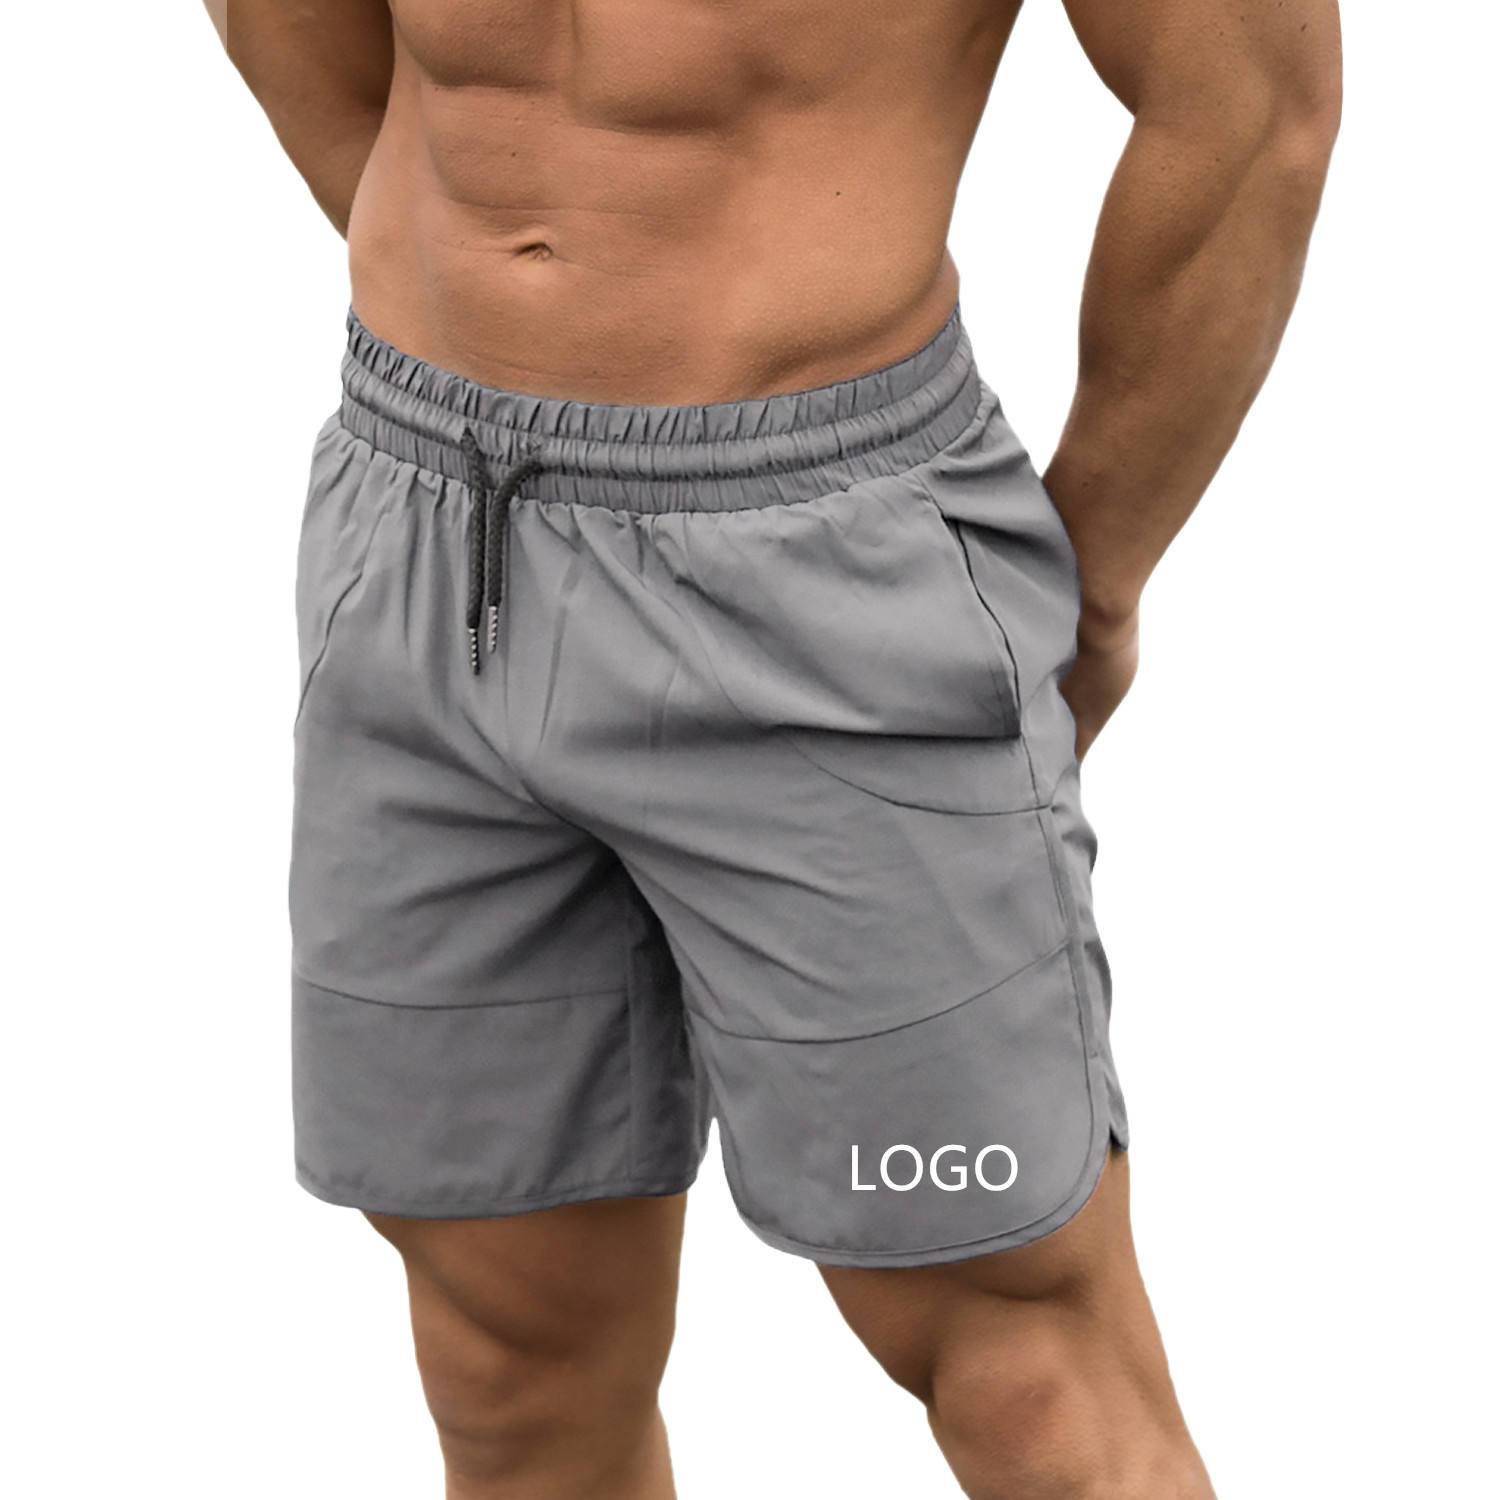 High Quality Plus Size Men Basketball Training Short Shorts,Casual Cotton Shorts For Mens